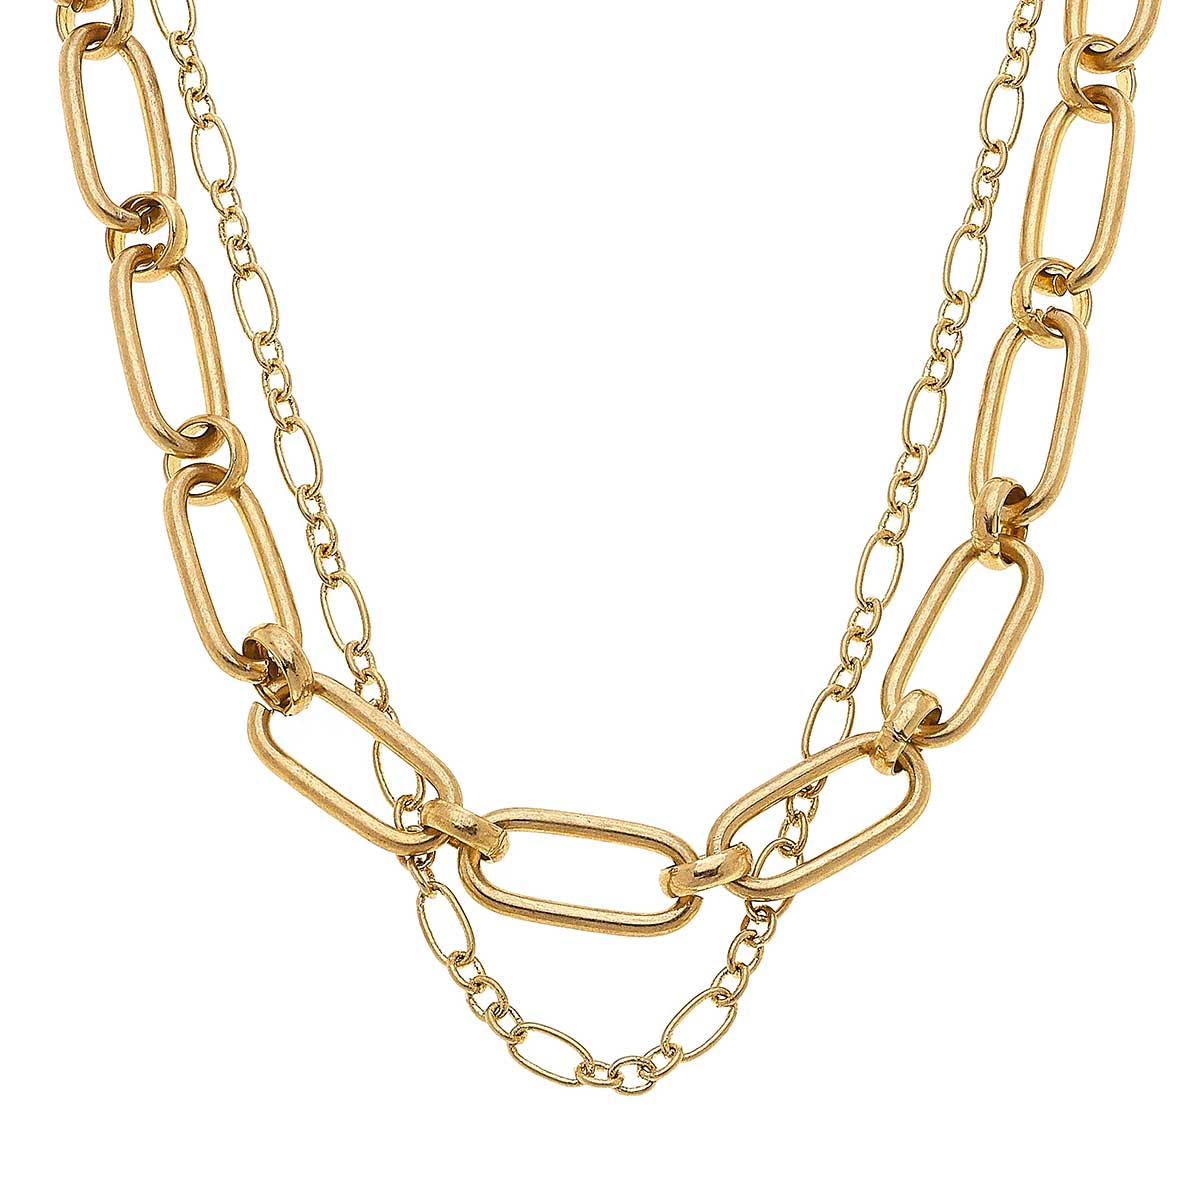 Everly Layered Chain Necklace In Worn Gold